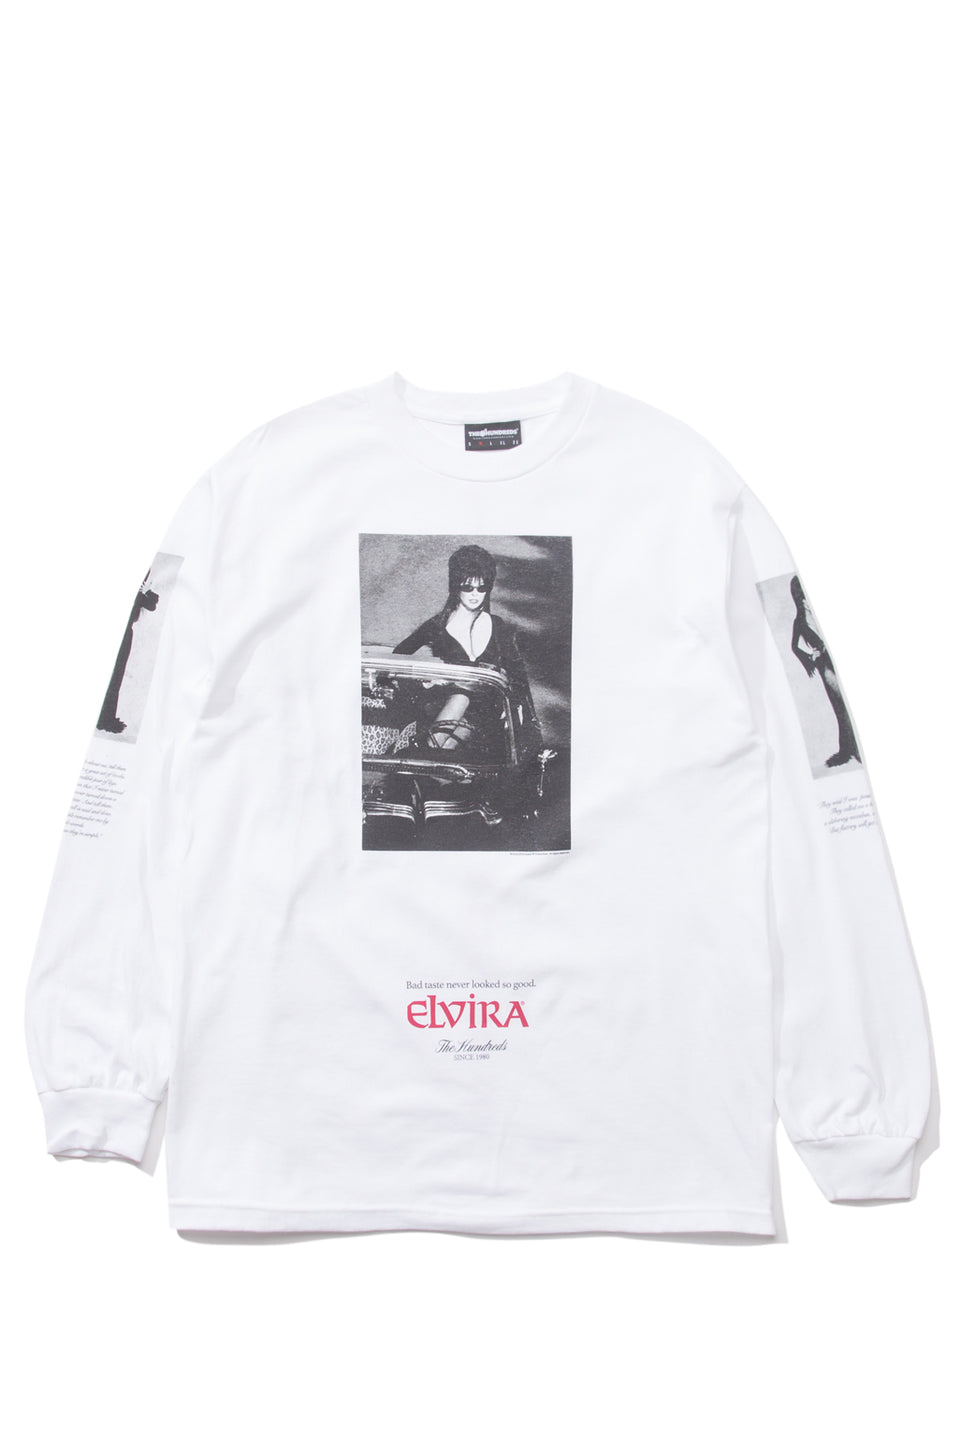 Elvira Ride L/S Shirt